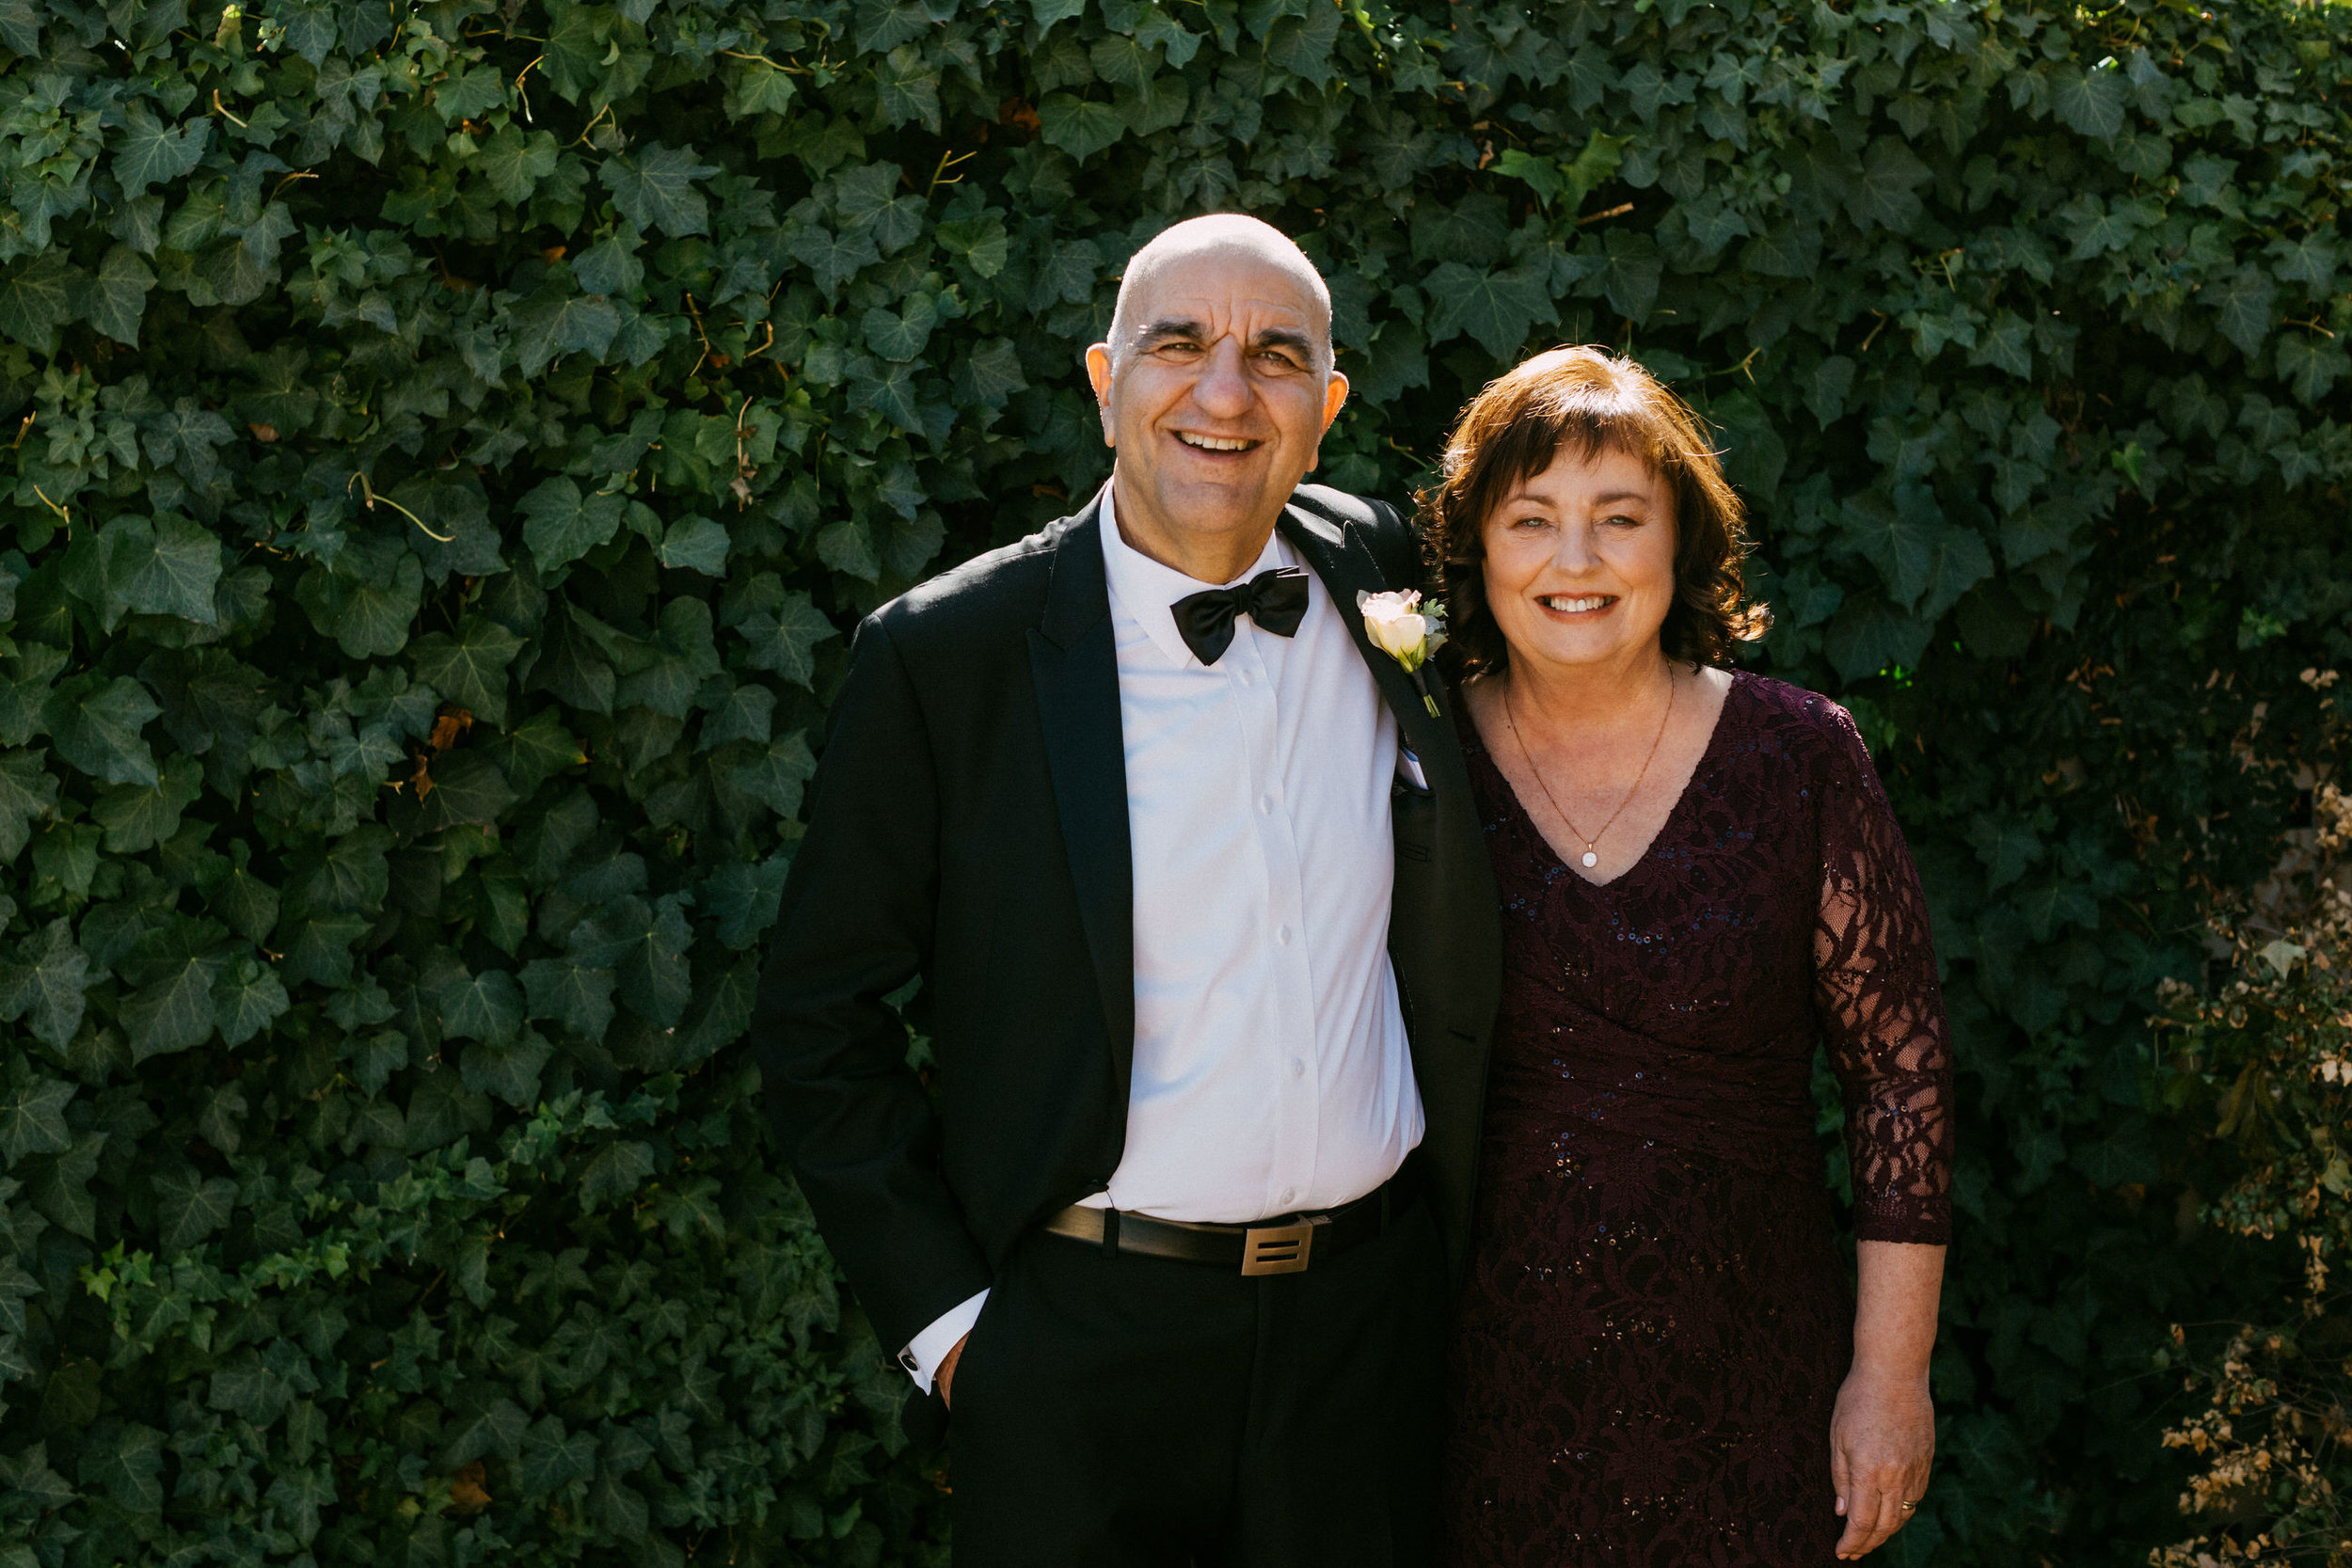 Adelaide Wedding 2019 017.jpg